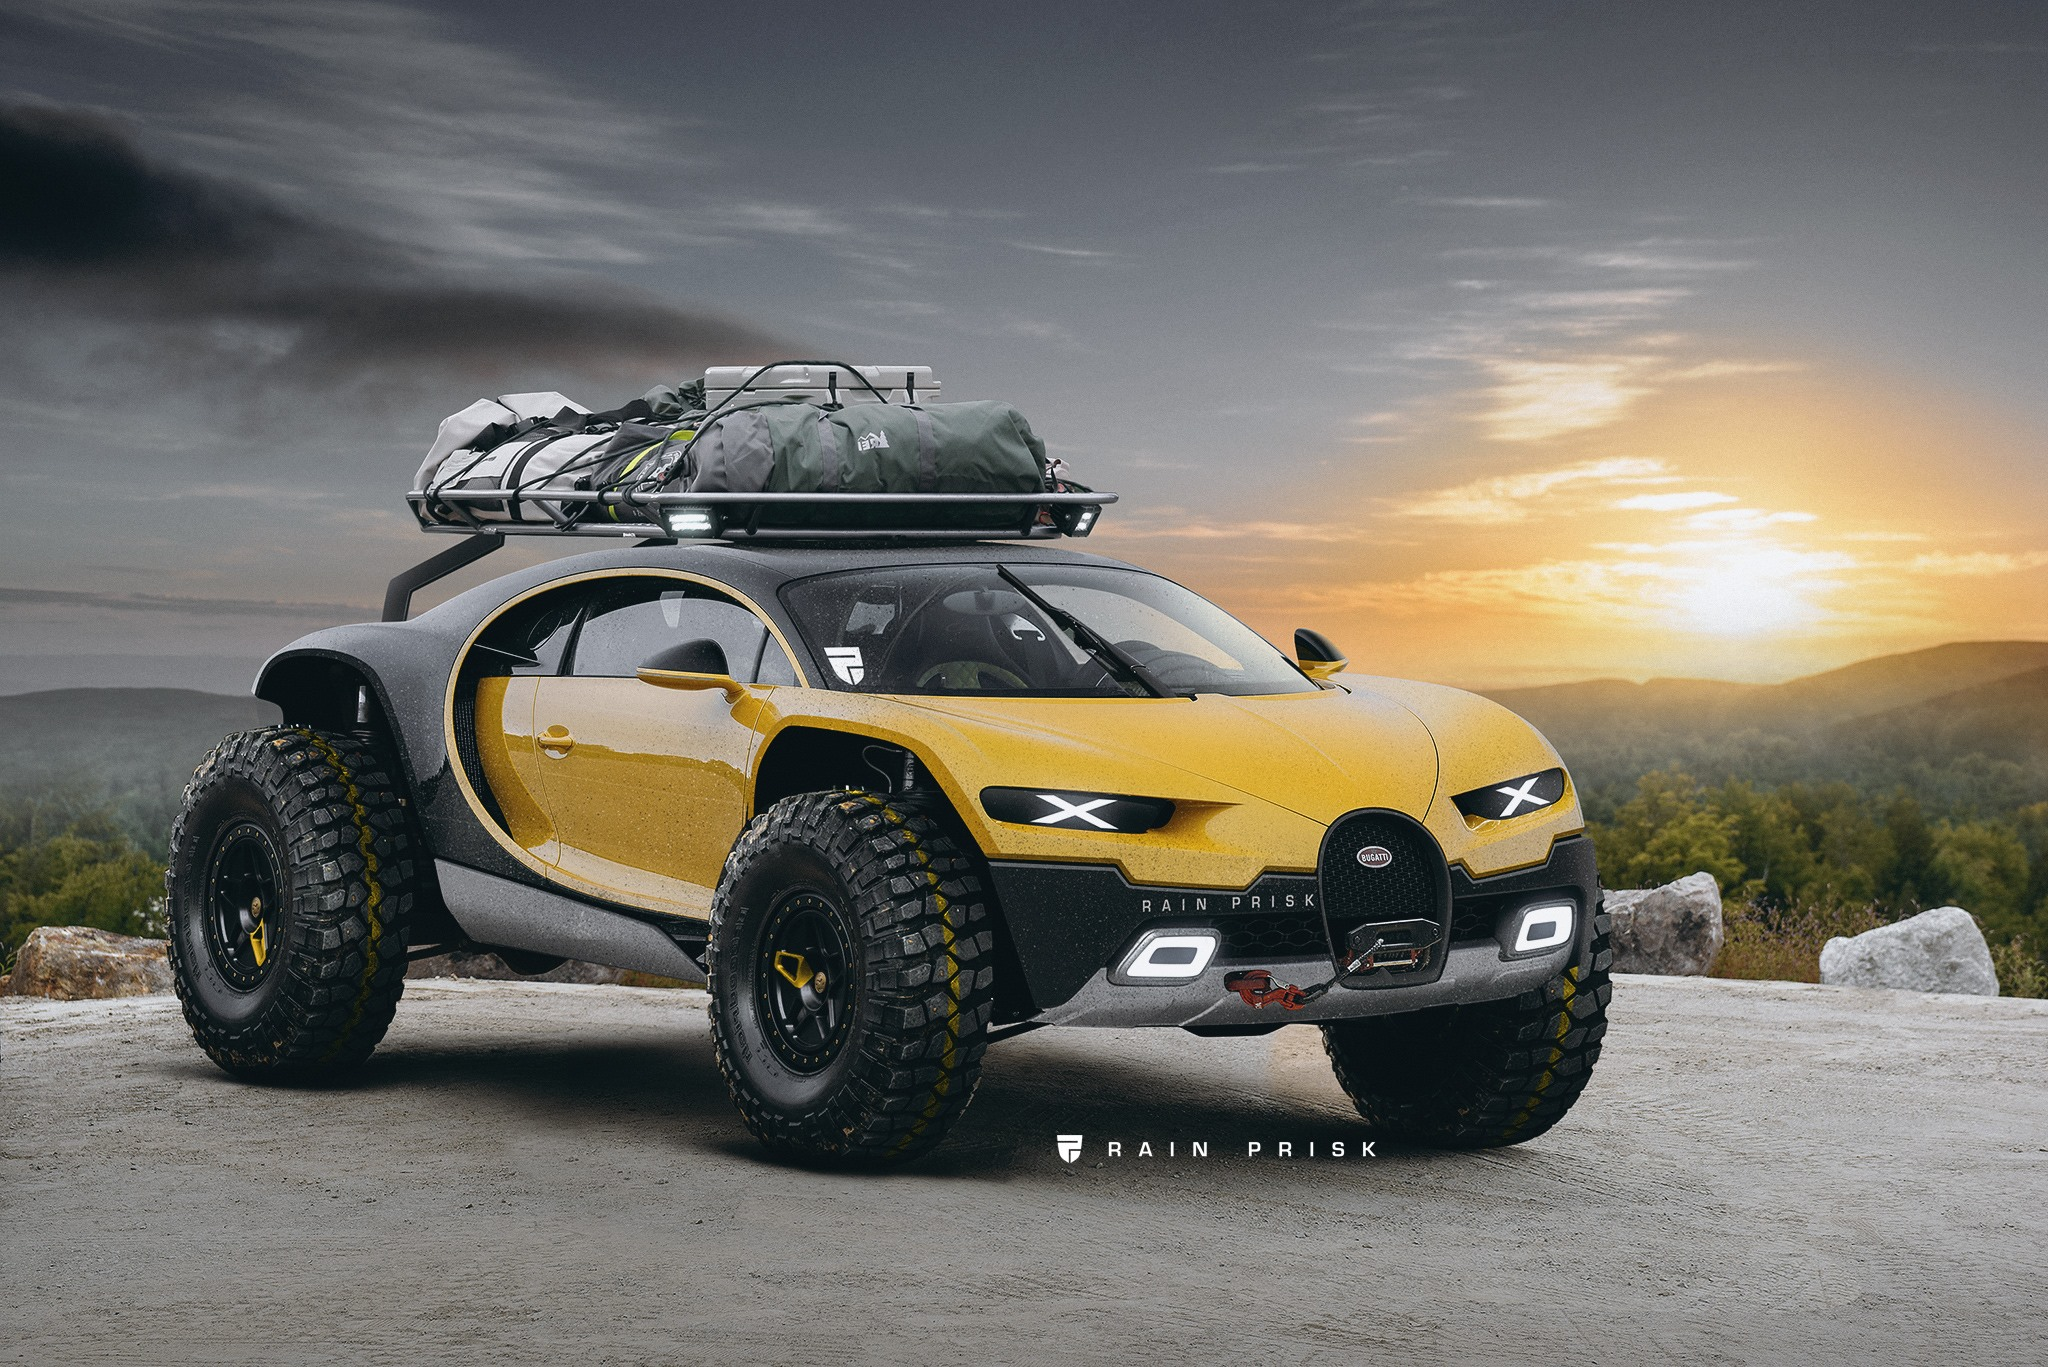 Roof Rack Lamborghini >> Bugatti Chiron Digitally Turned Into An Off-Road SUV - autoevolution